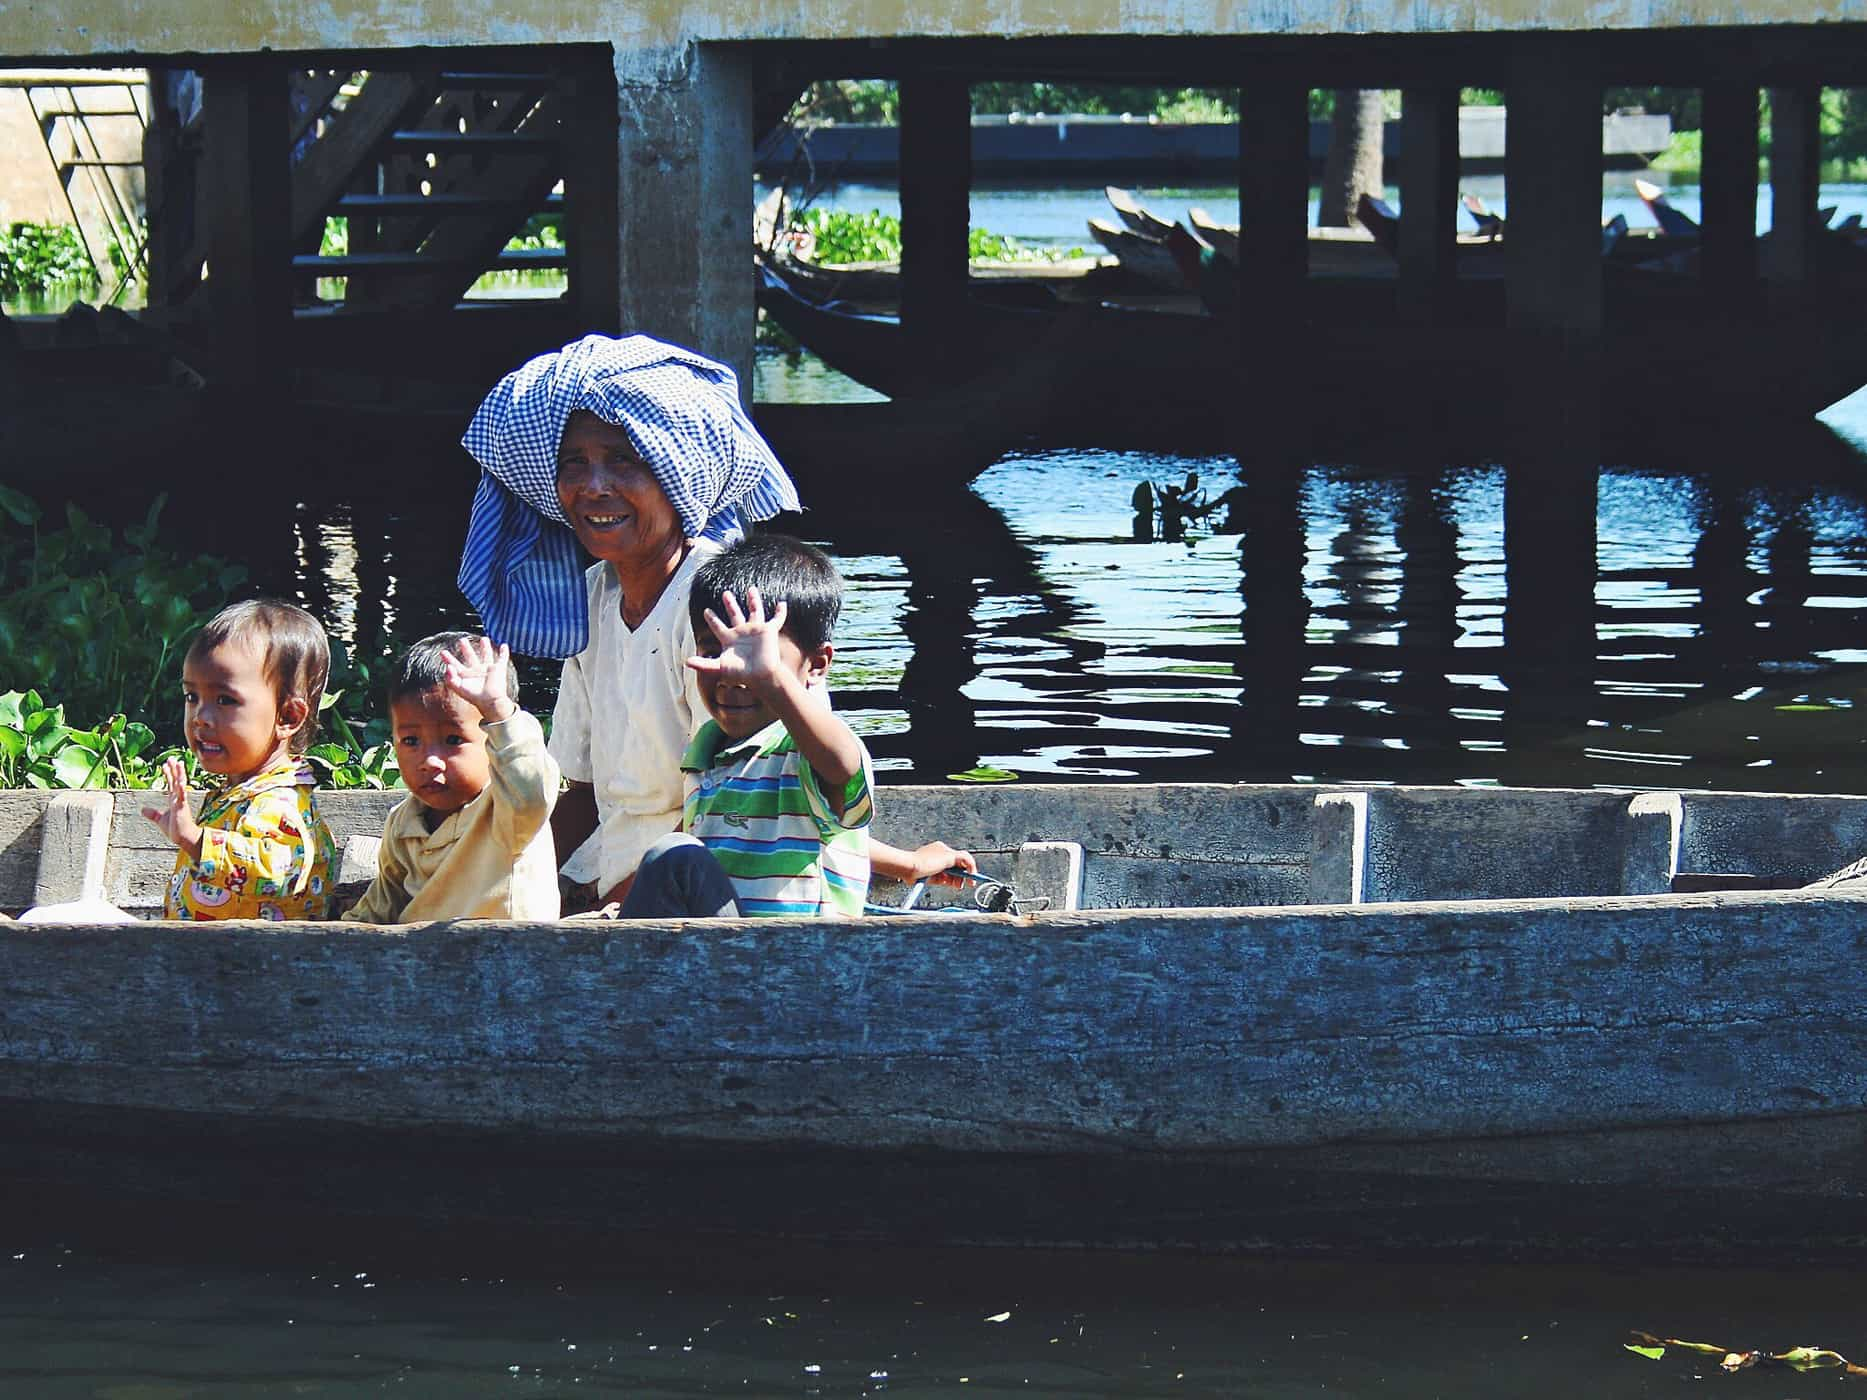 Daily life on the Tonlé Sap, Siem Reap.